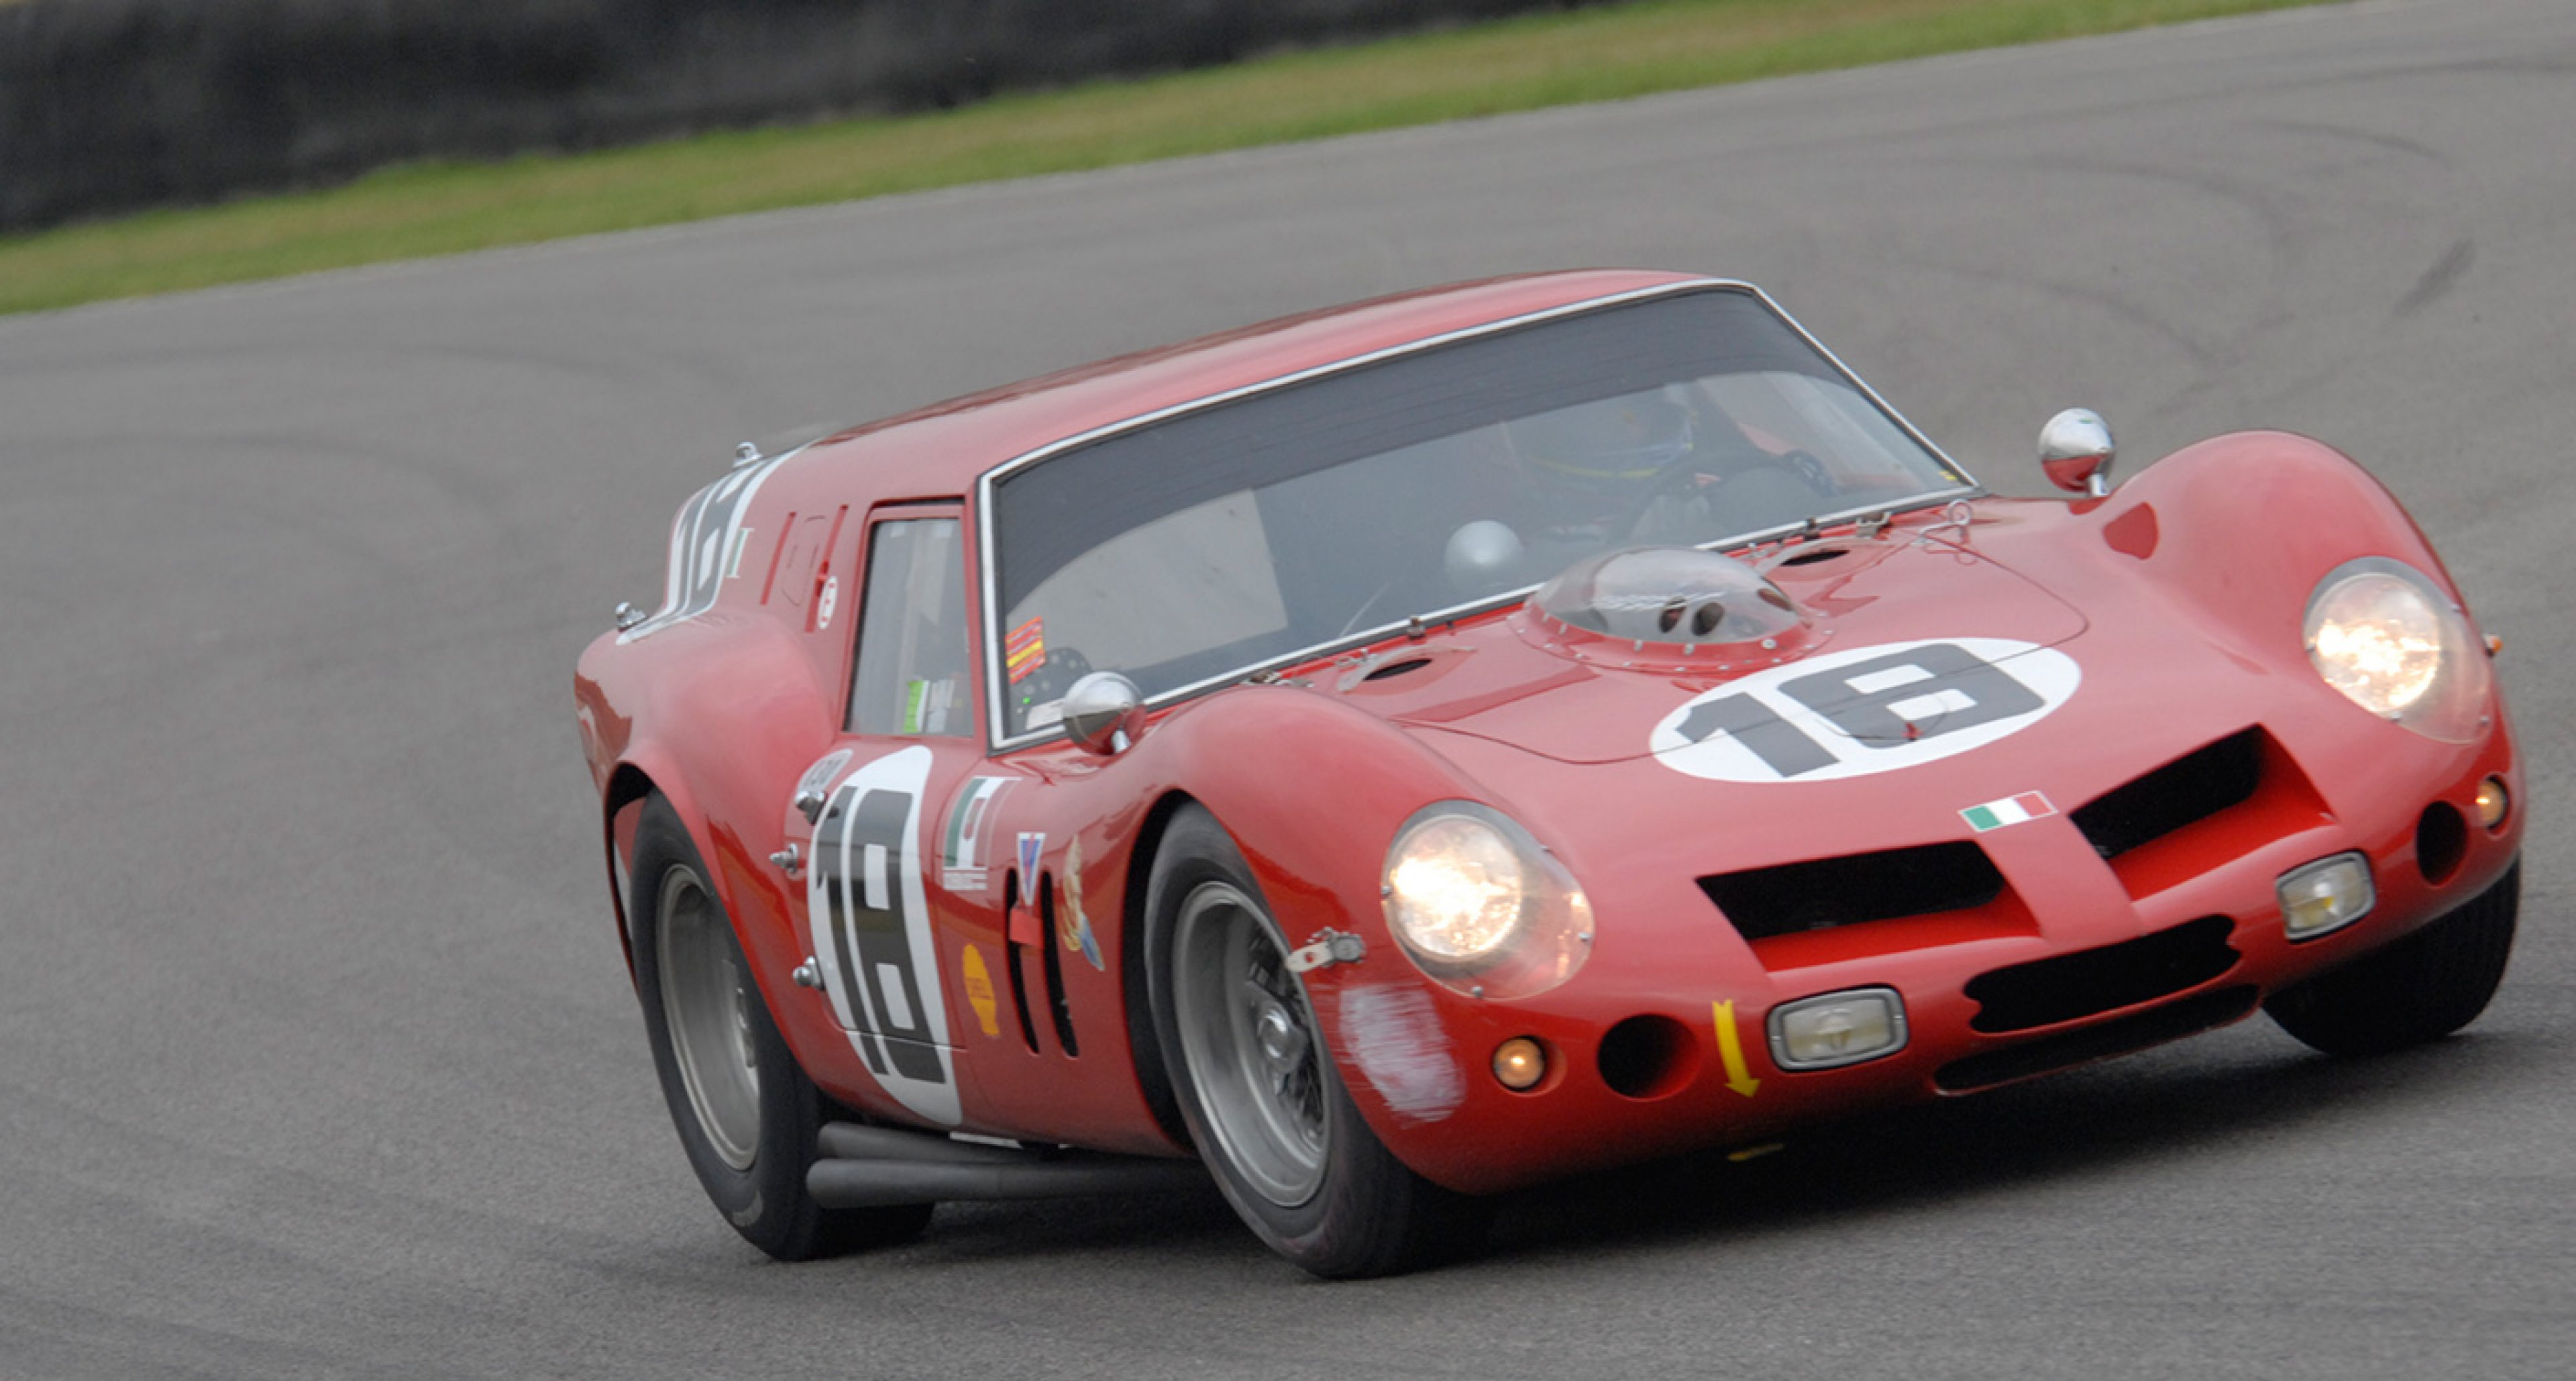 The Ferrari 'Breadvan' will meet its Lotus protégé at Goodwood this year